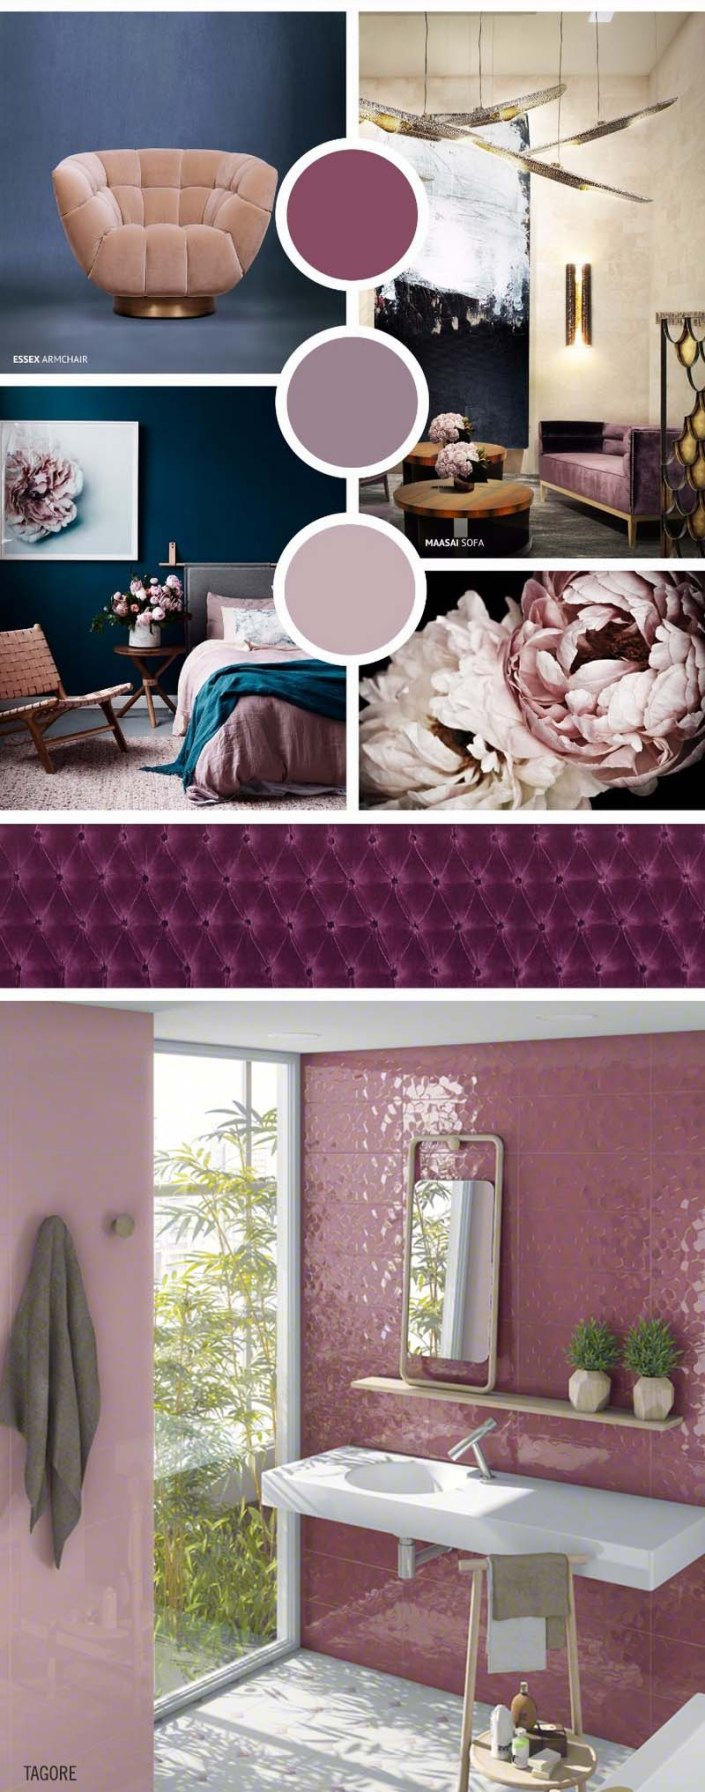 3_Decorate-Your-Interiors-Using-Pantones-2018-Colour-Trends-Predictions-1